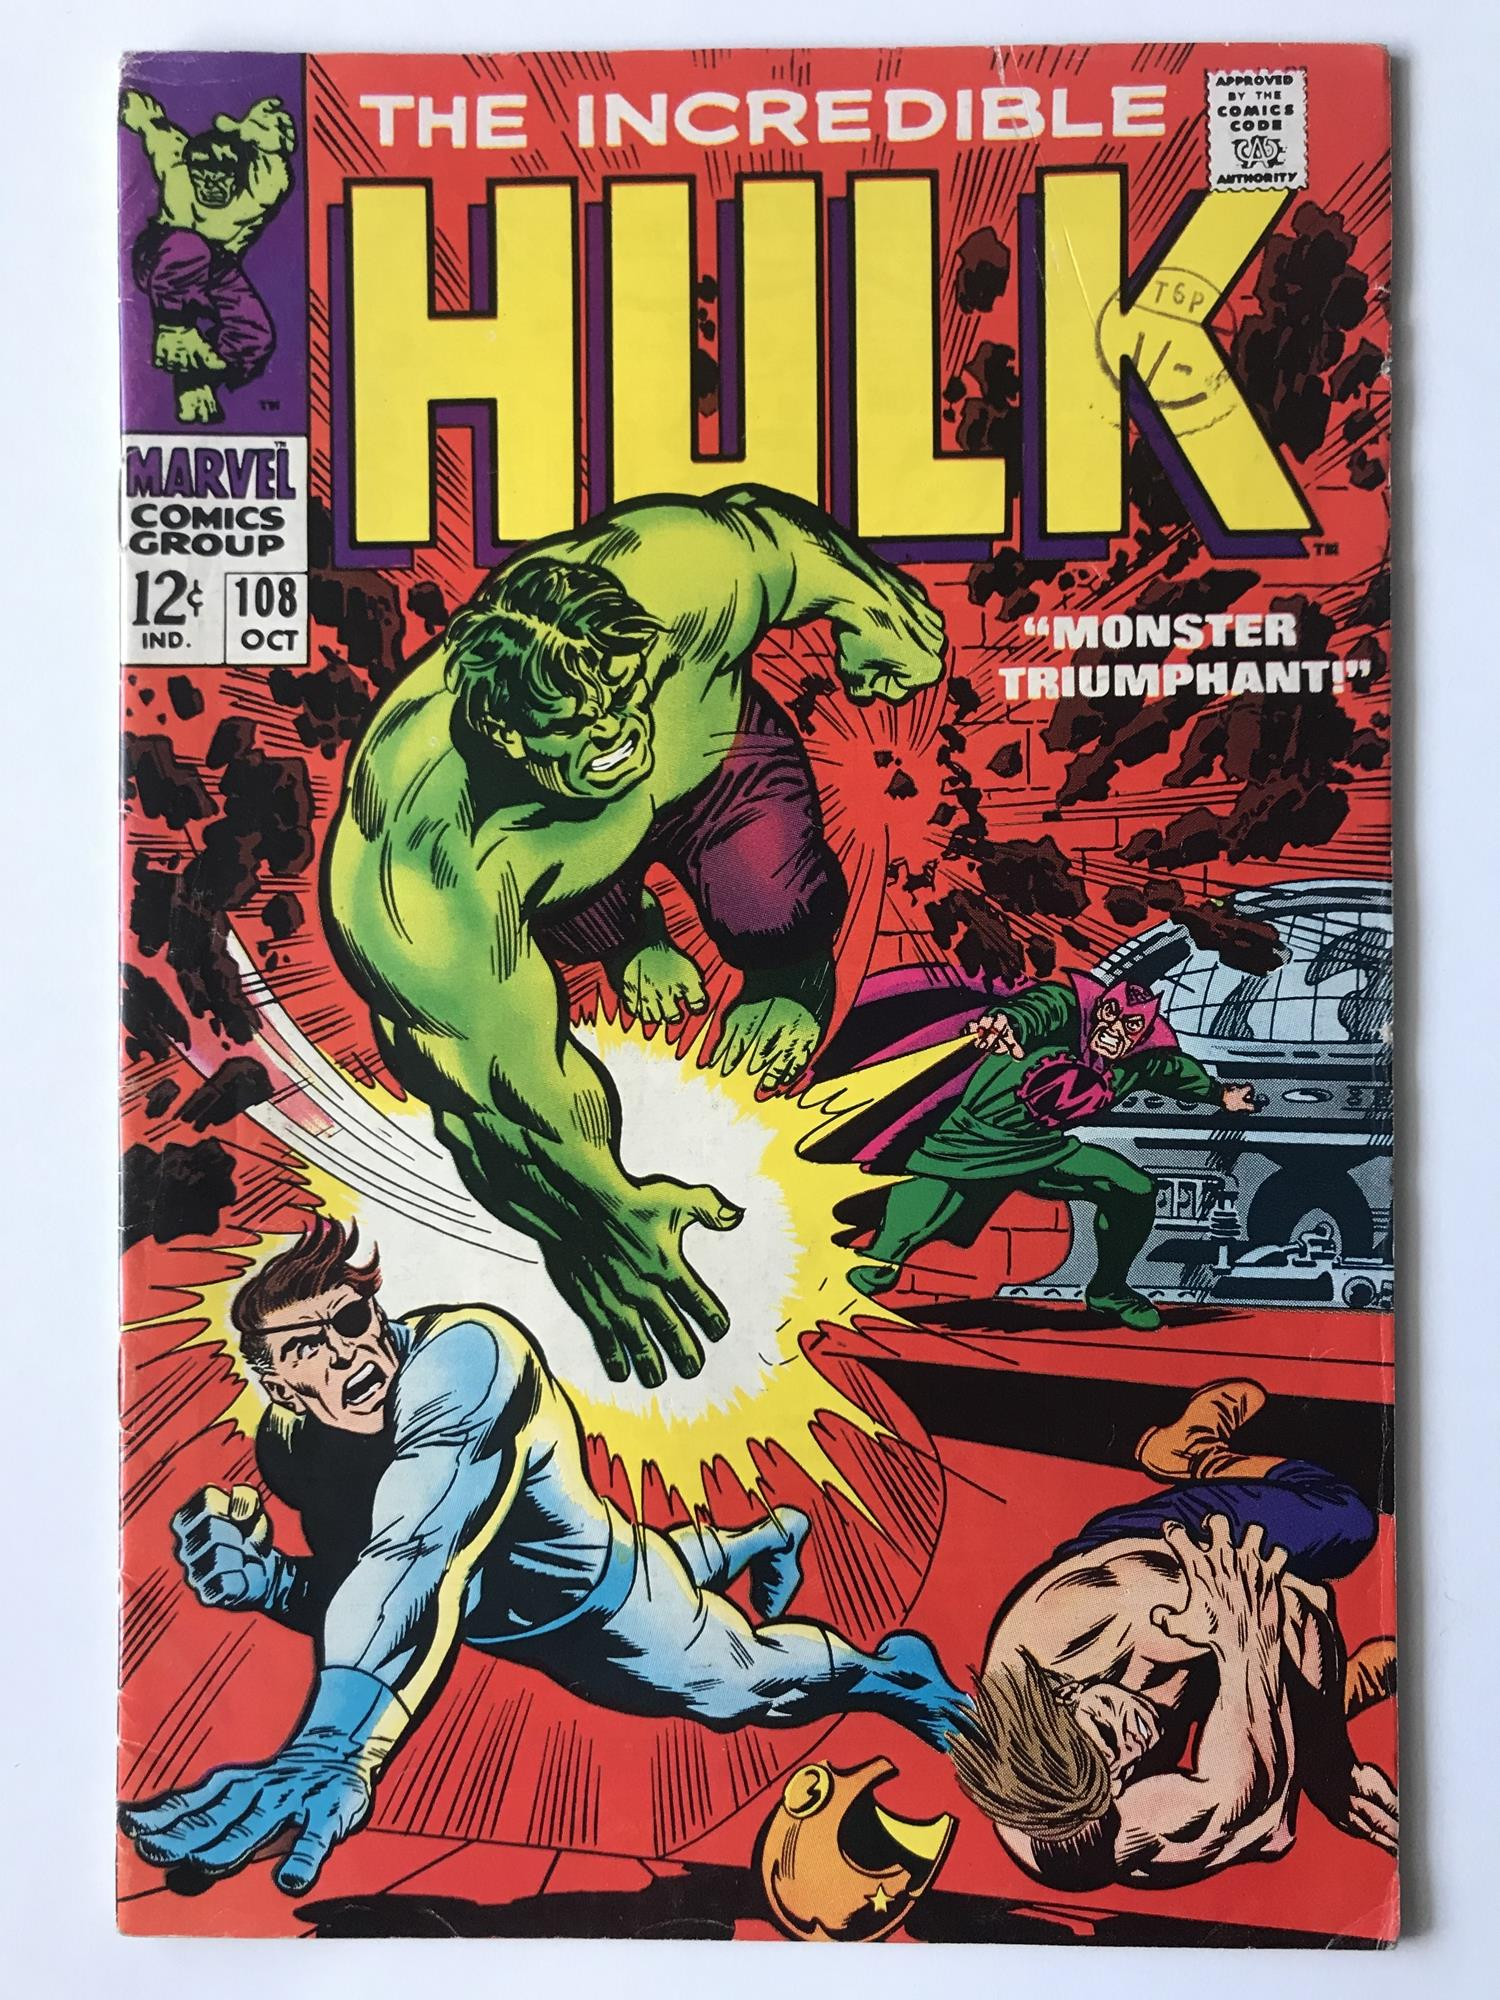 Lot 38 - HULK # 108 (1968 - MARVEL - Cents with Pence Stamp) - Hulk battles Mandarin + Nick Fury and S.H.I.